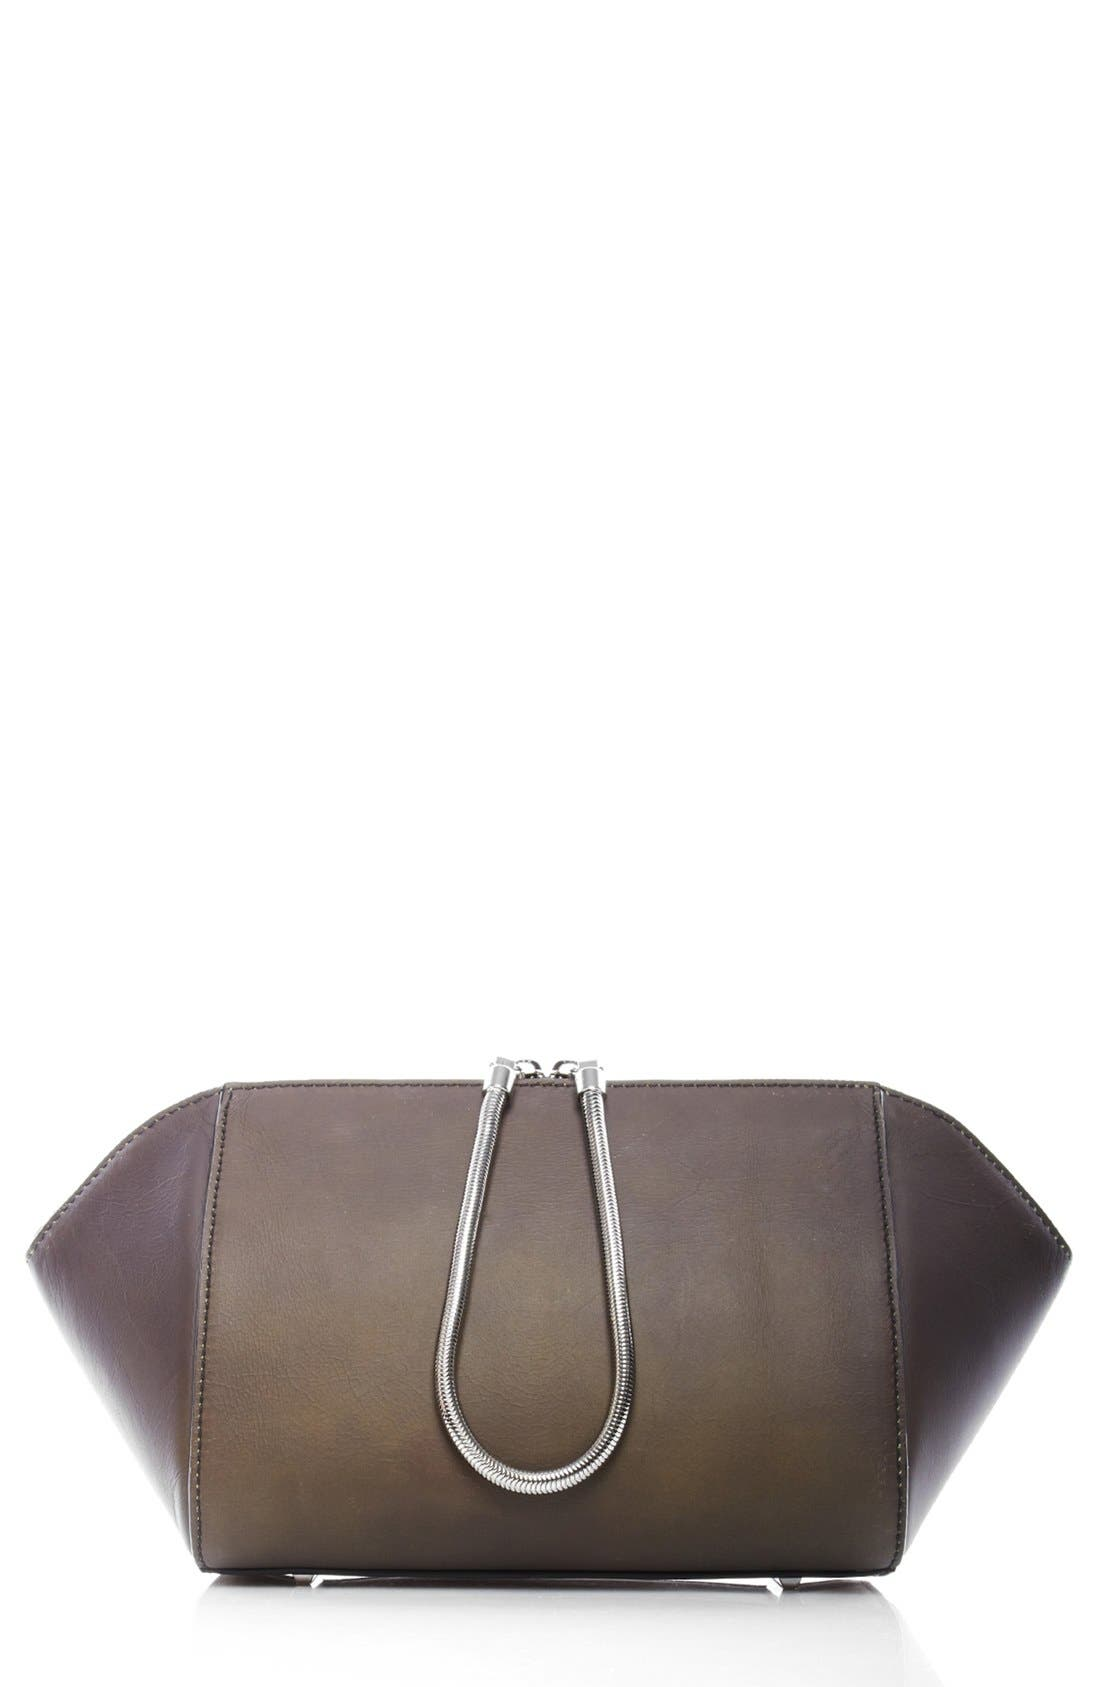 Alternate Image 1 Selected - Alexander Wang 'Large Chastity' Leather Clutch